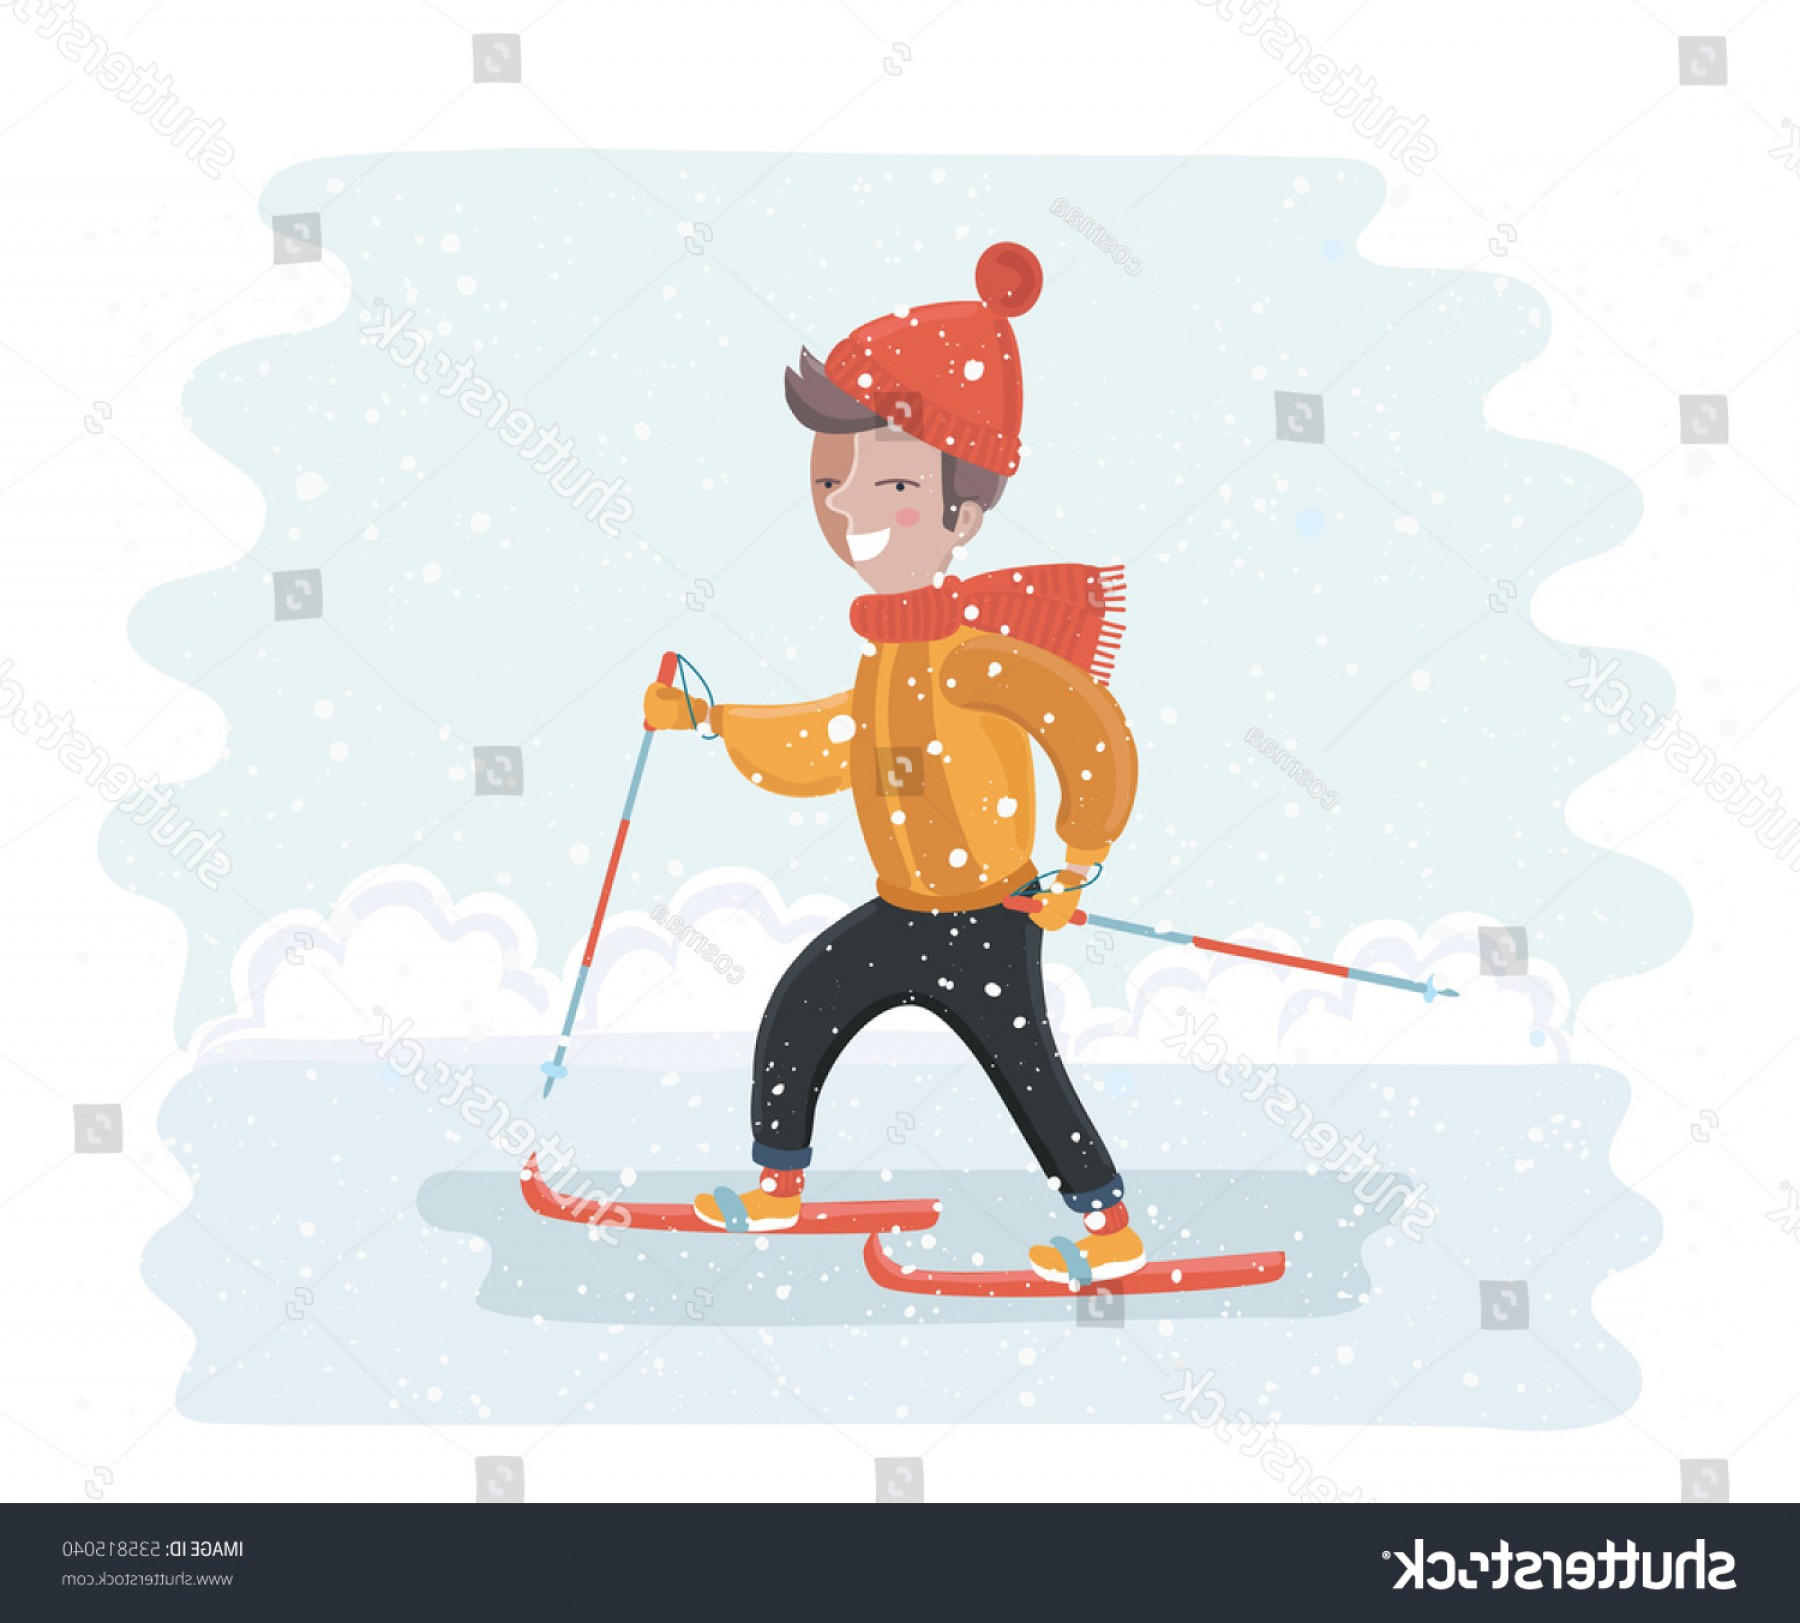 Transparent PNG Vector Skier: Vector Cartoon Funny Illustration Cute Smiling